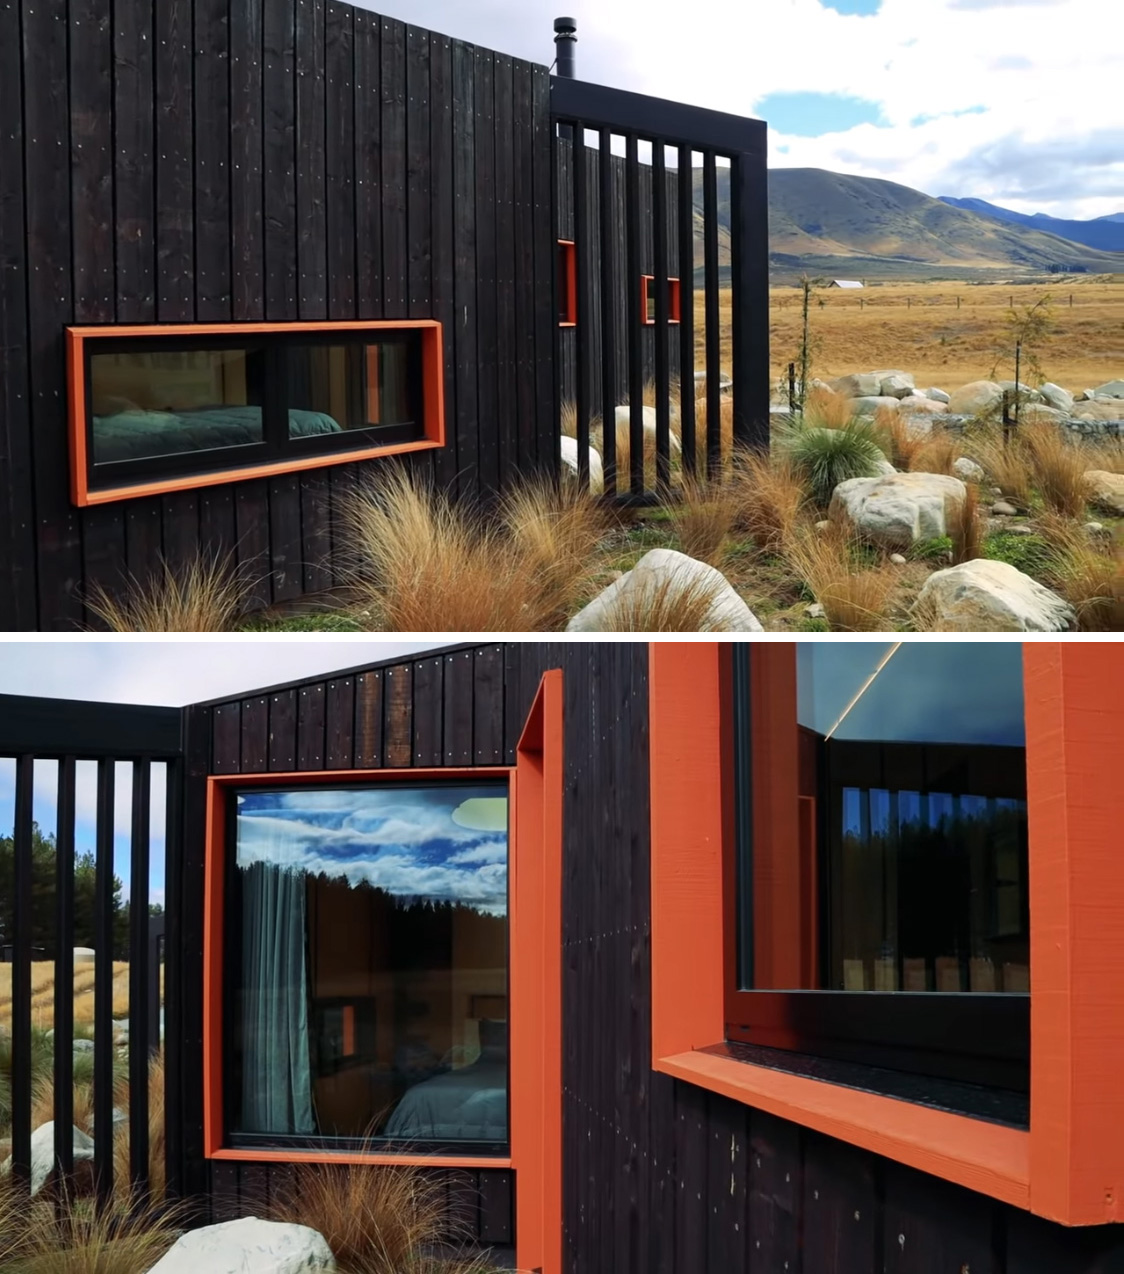 A tiny house with burnt wood siding and contrasting orange window frames.